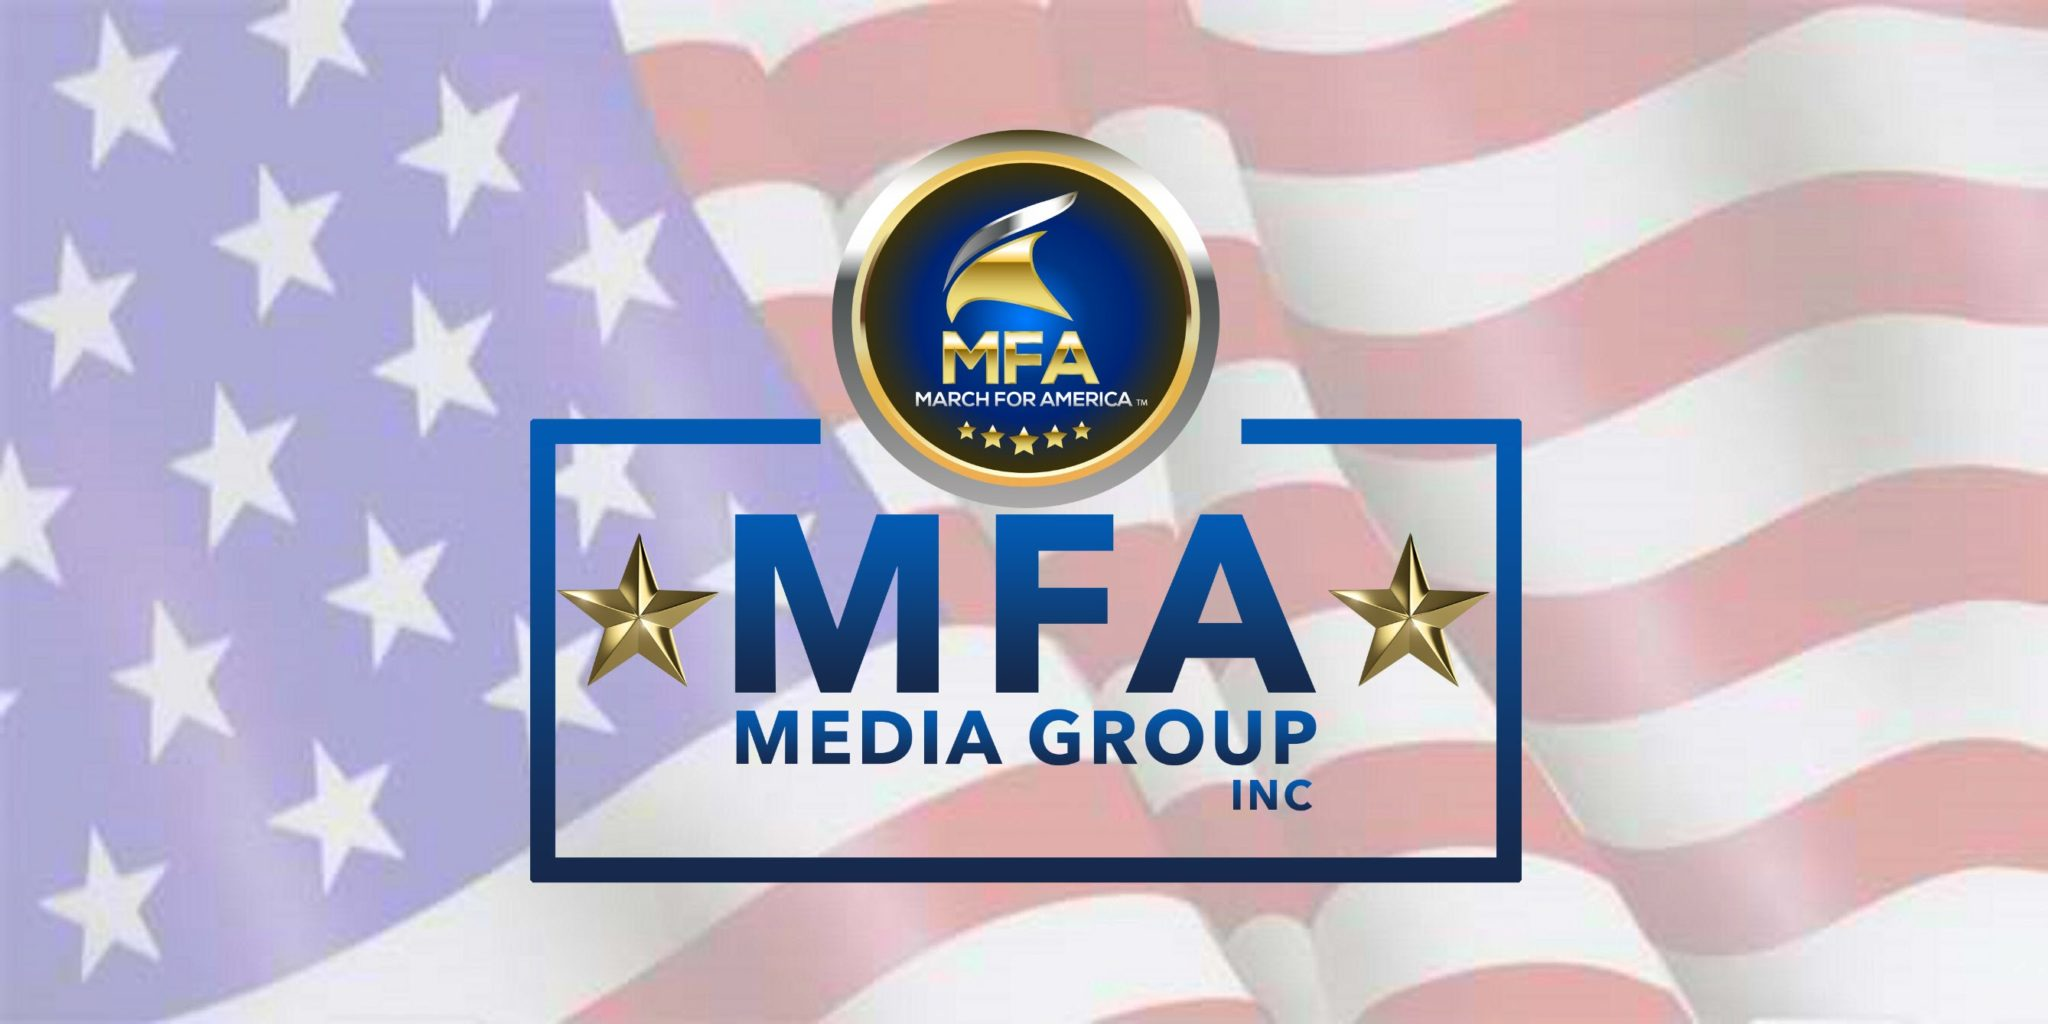 MFA Media Group